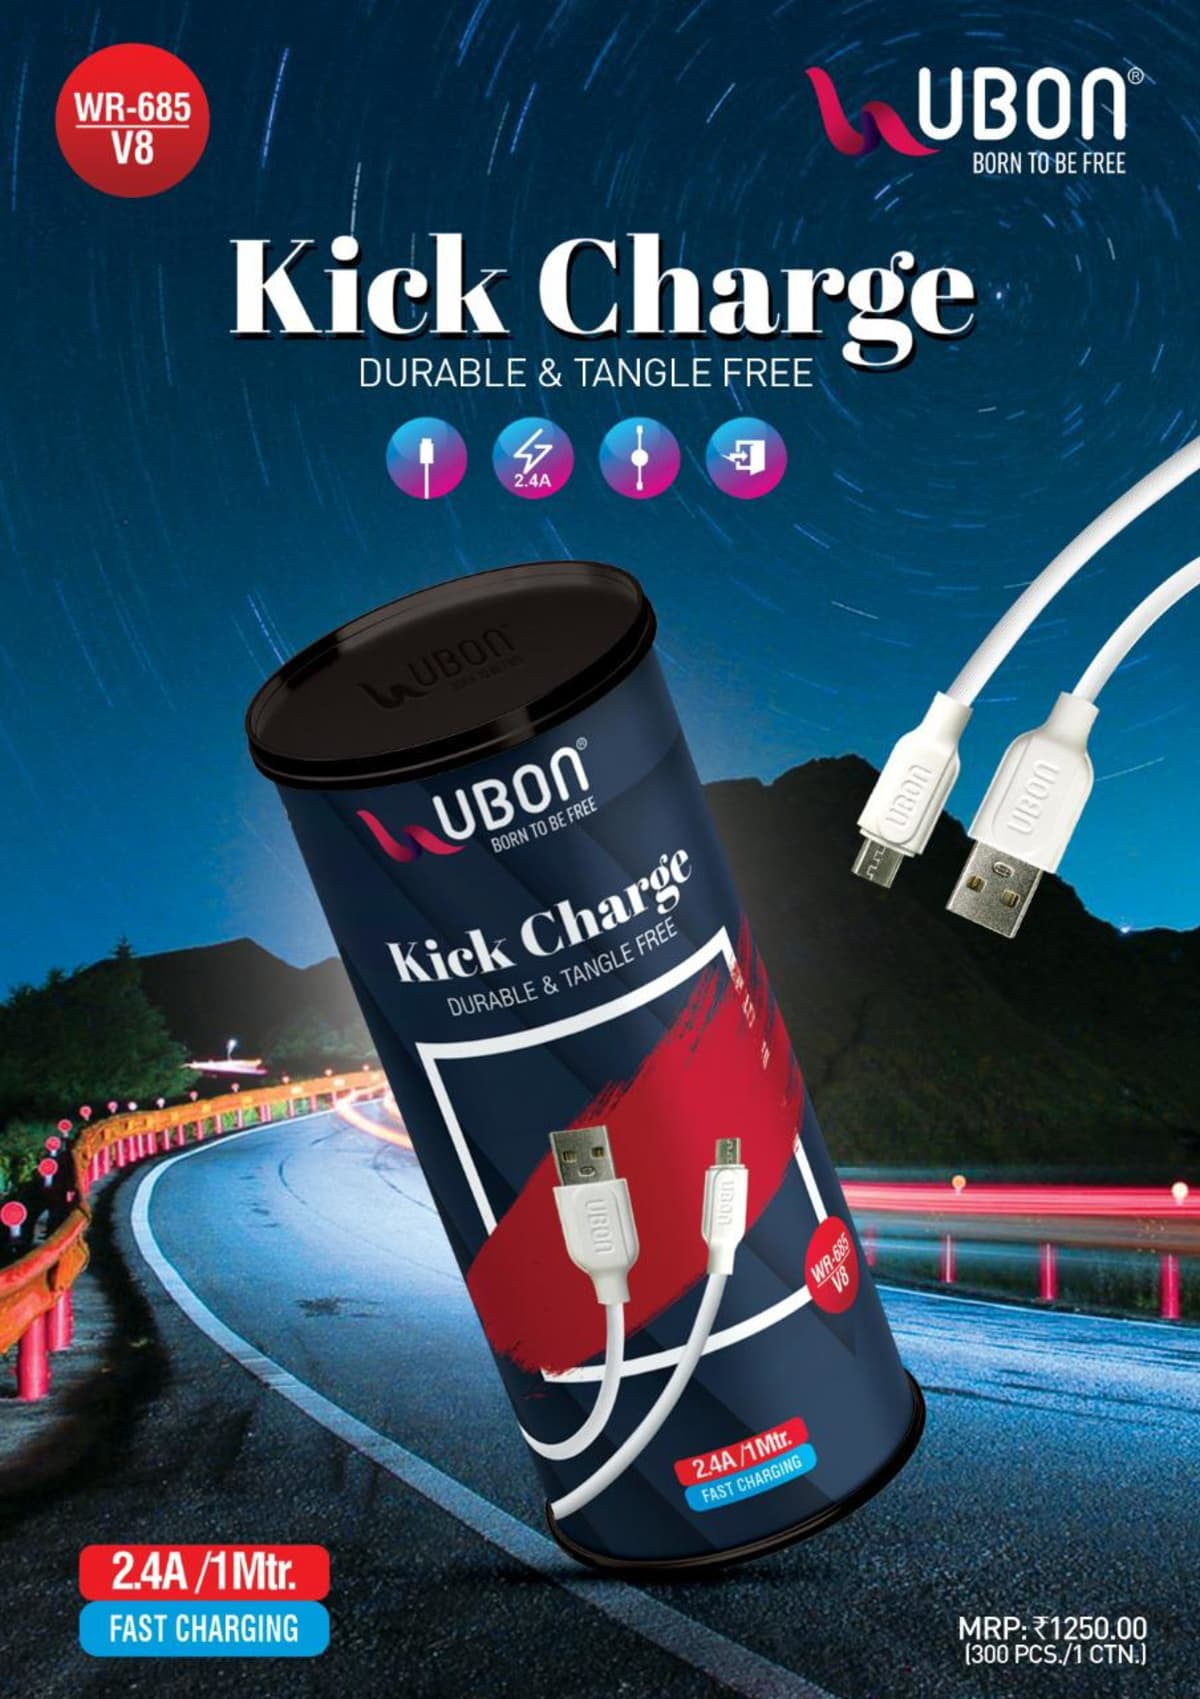 Wr-685 Â 2.4A USB cable  Fast Charging & Data transfer